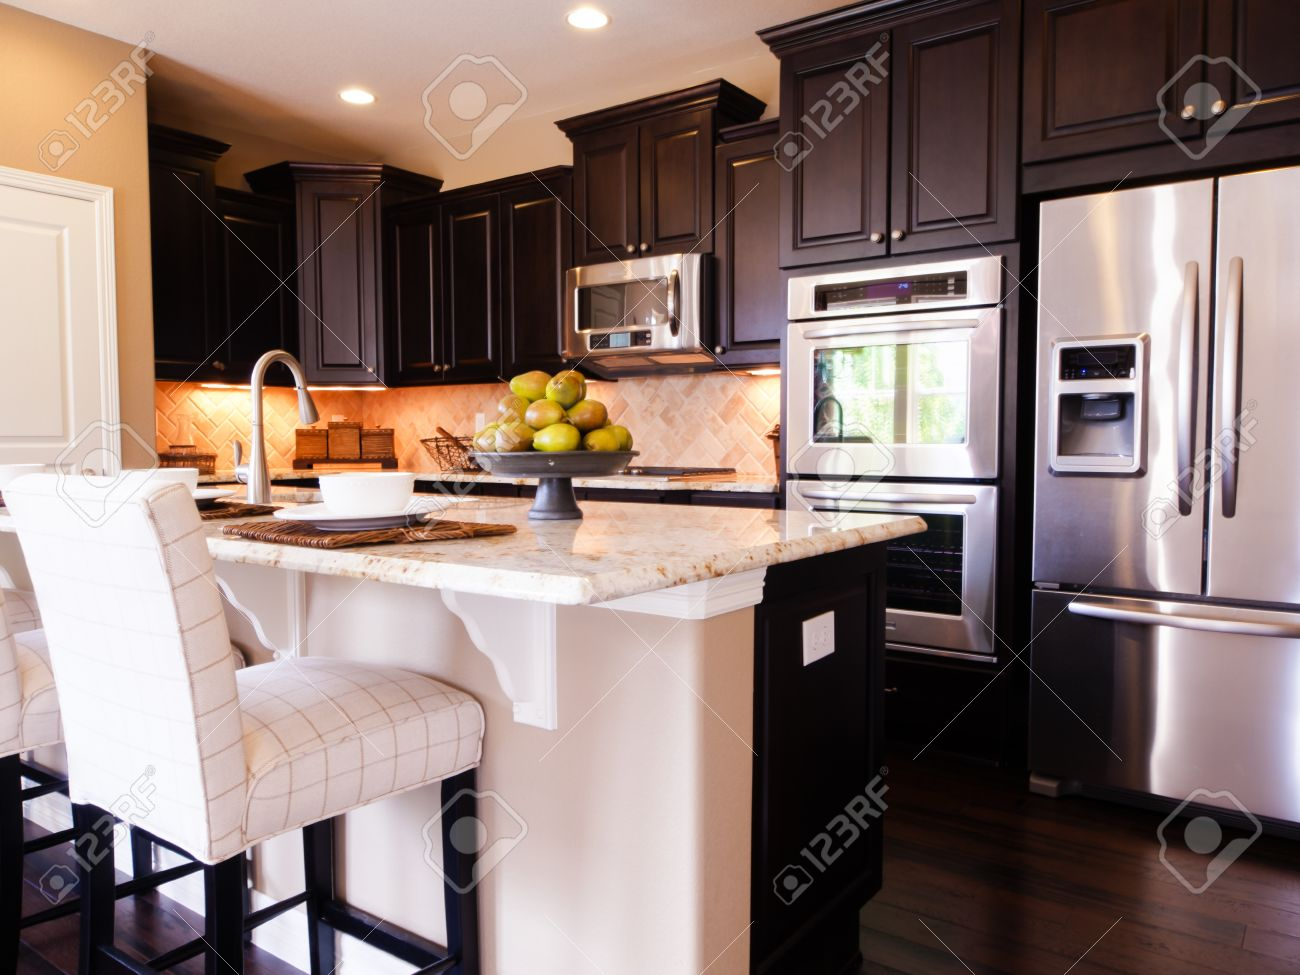 Modern Dark Wood Kitchen Modern Kitchen With Dark Wood Cabinets And Hardwood Floorsstock